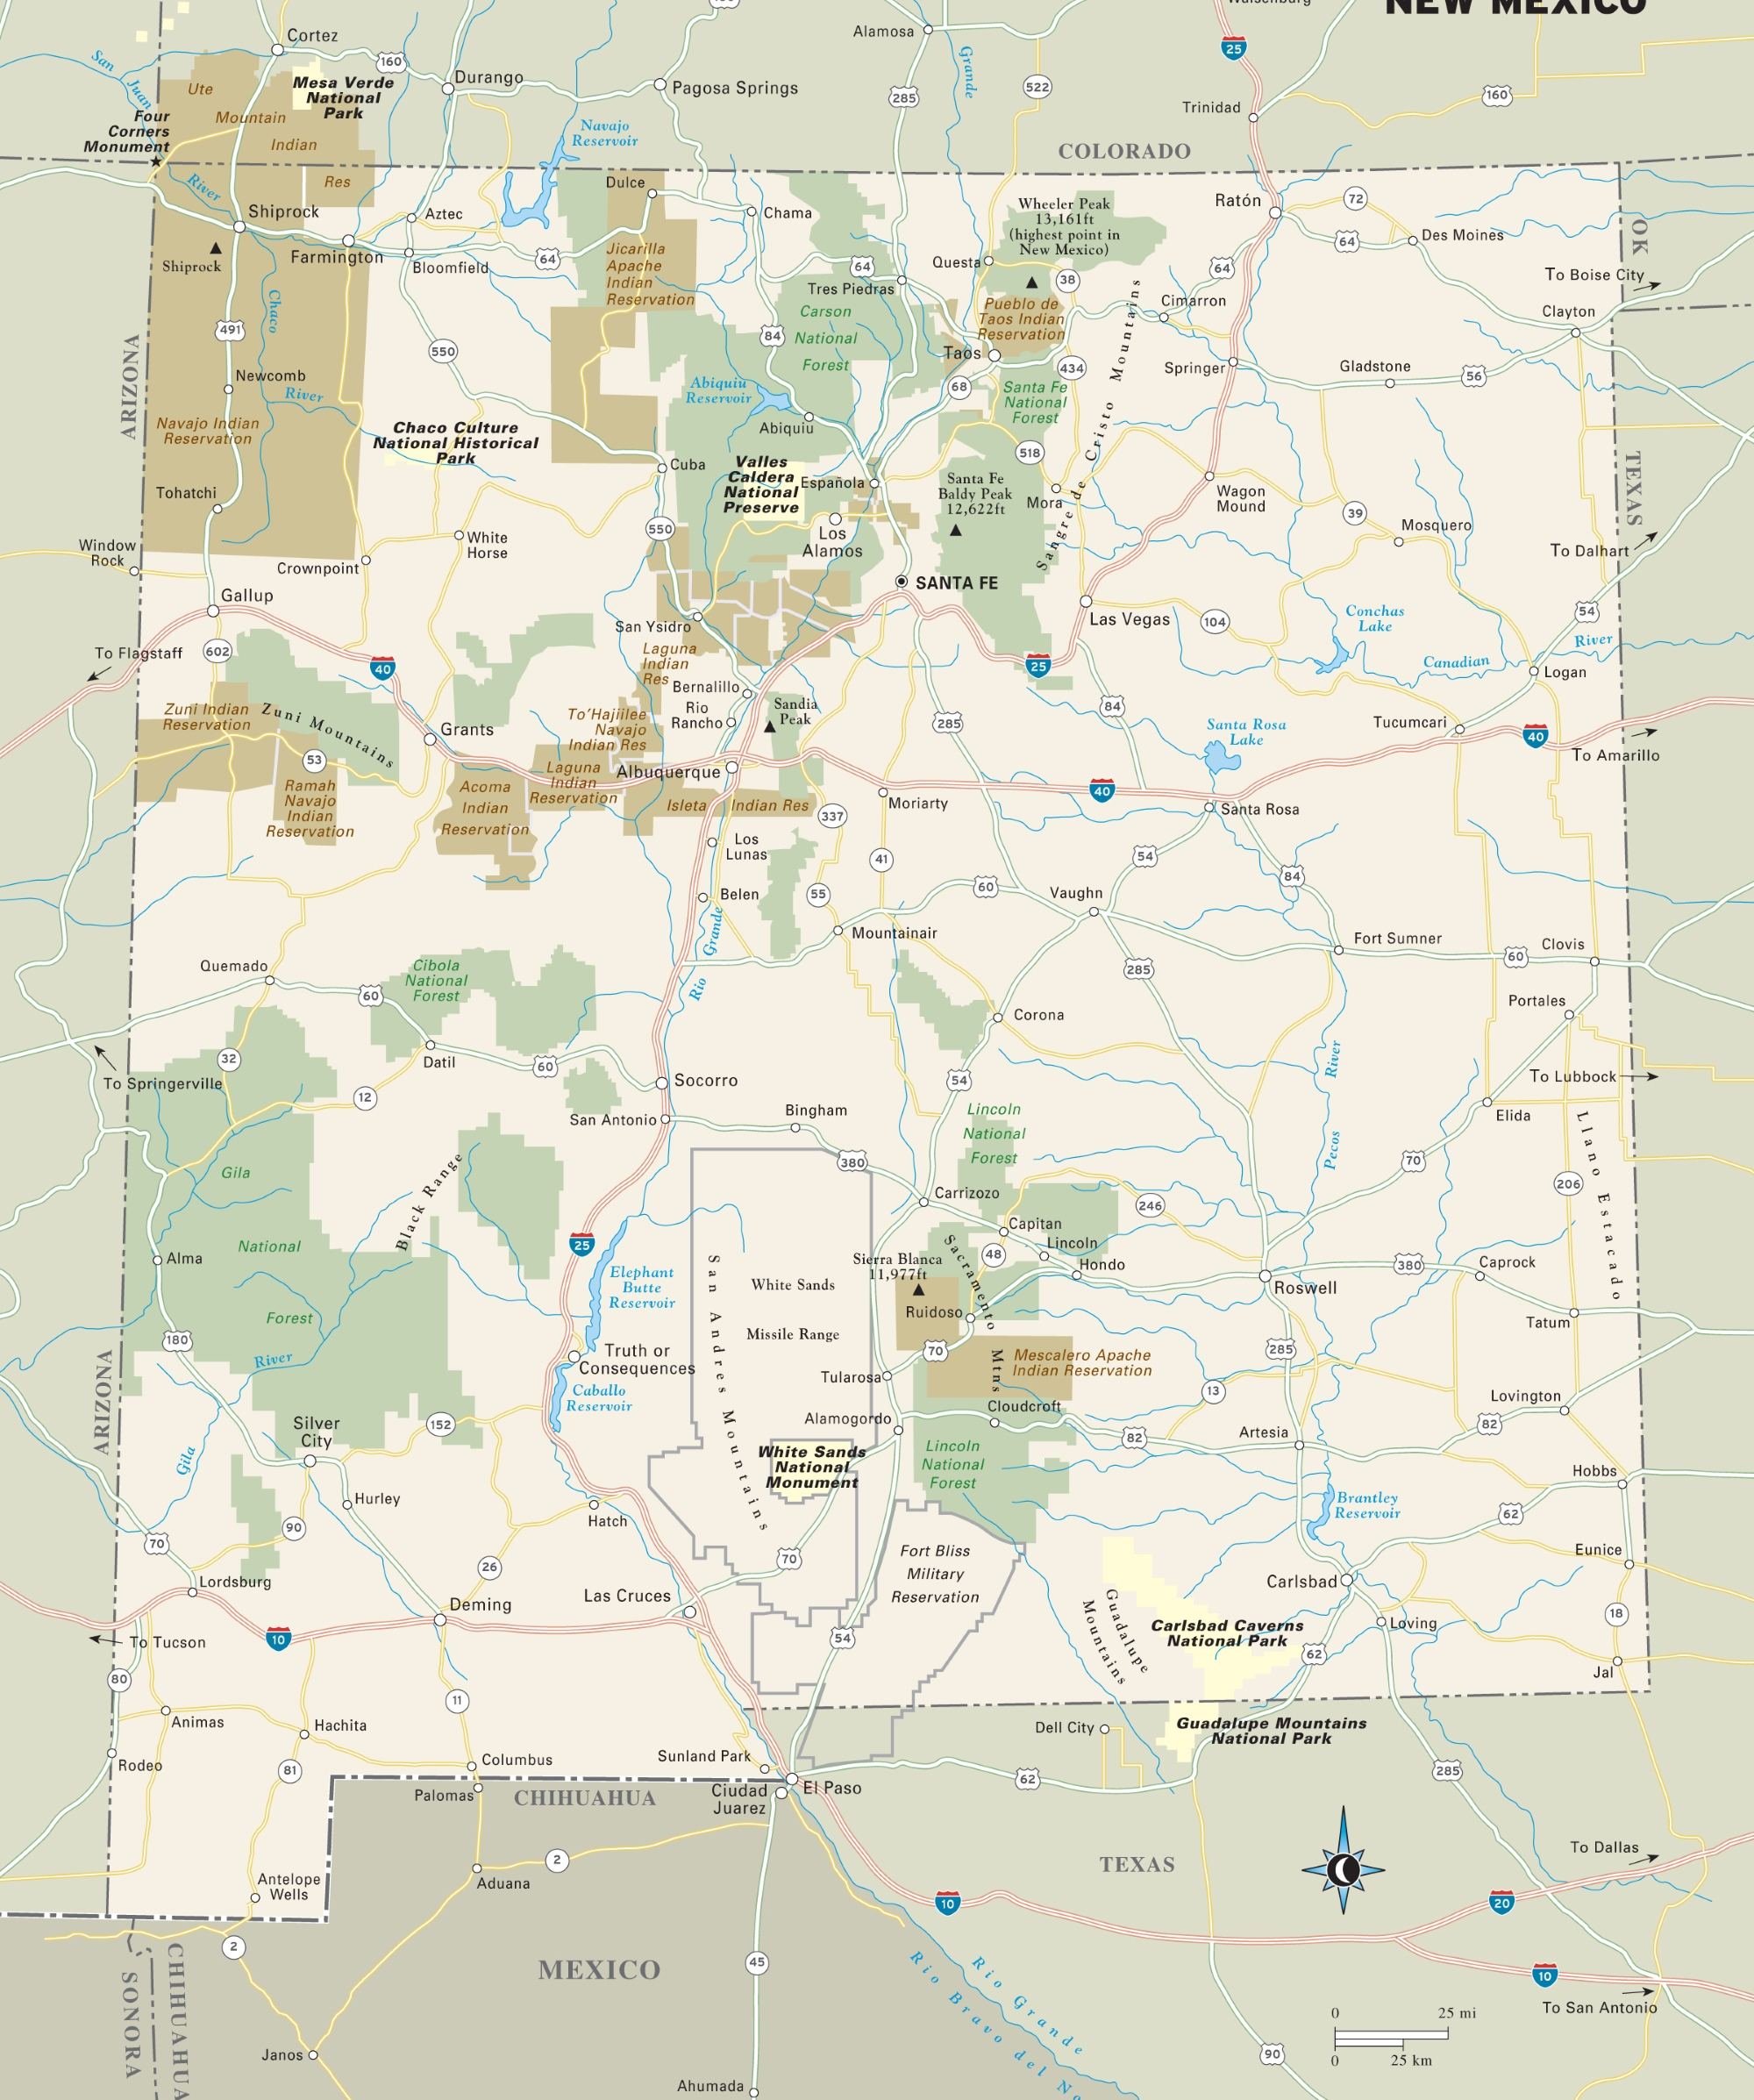 New Mexico national parks, monuments and forests map